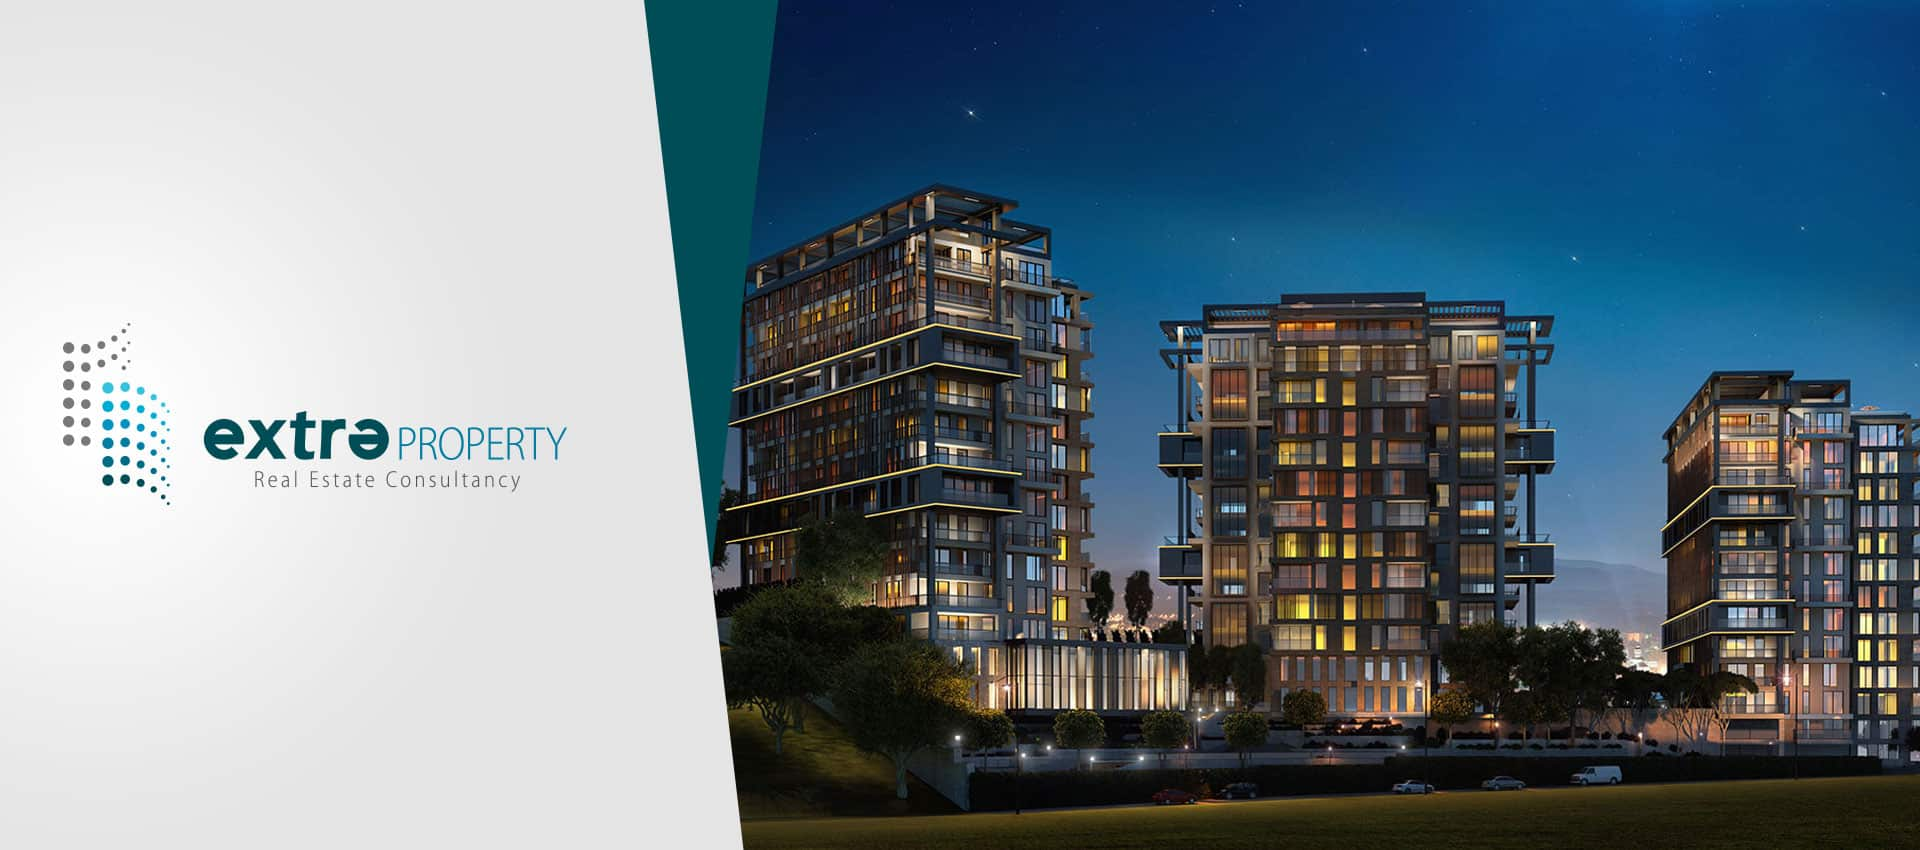 4 Seasons Real Estate Project Istanbul